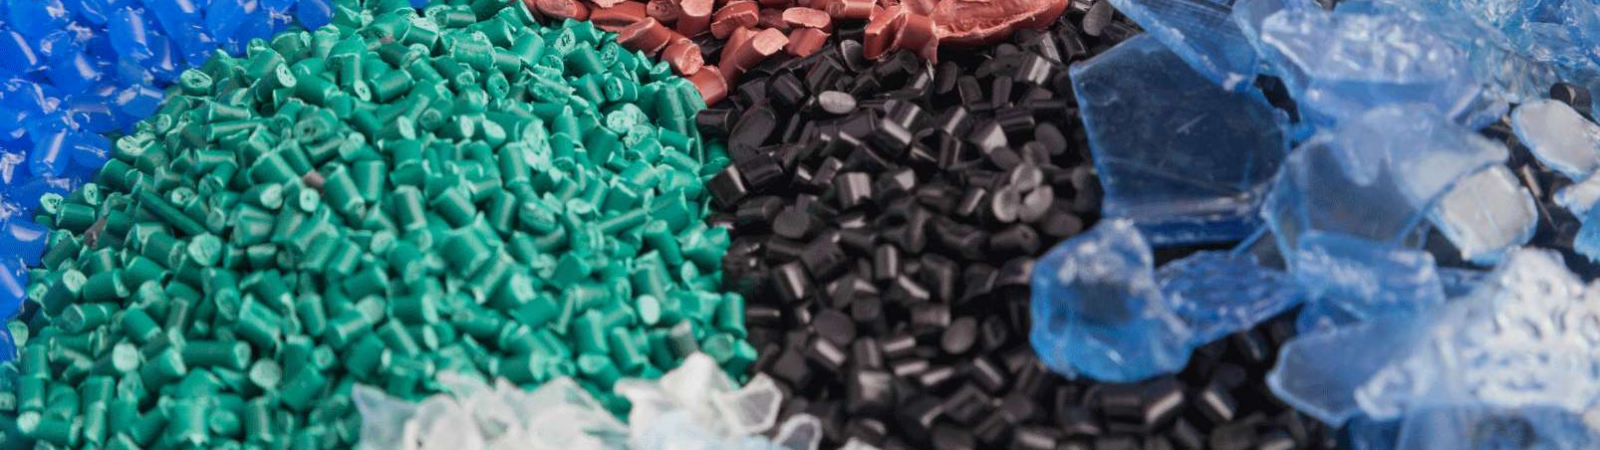 Additives-For-Recycling-category